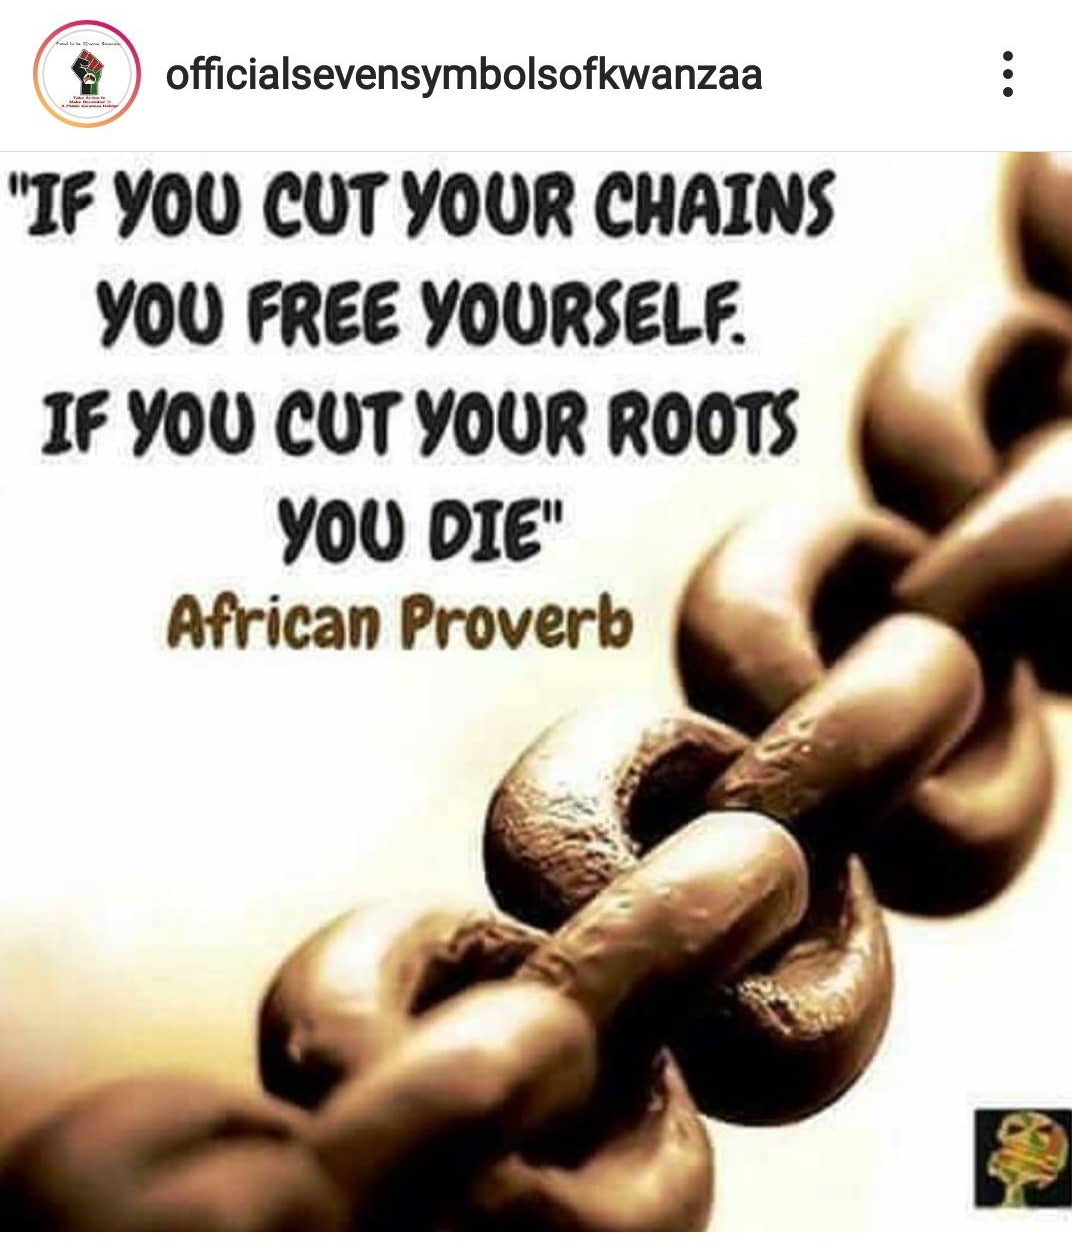 """"""" if you cut your chains you free yourself. If you cut your roots you die."""" African Proverb with chain image"""